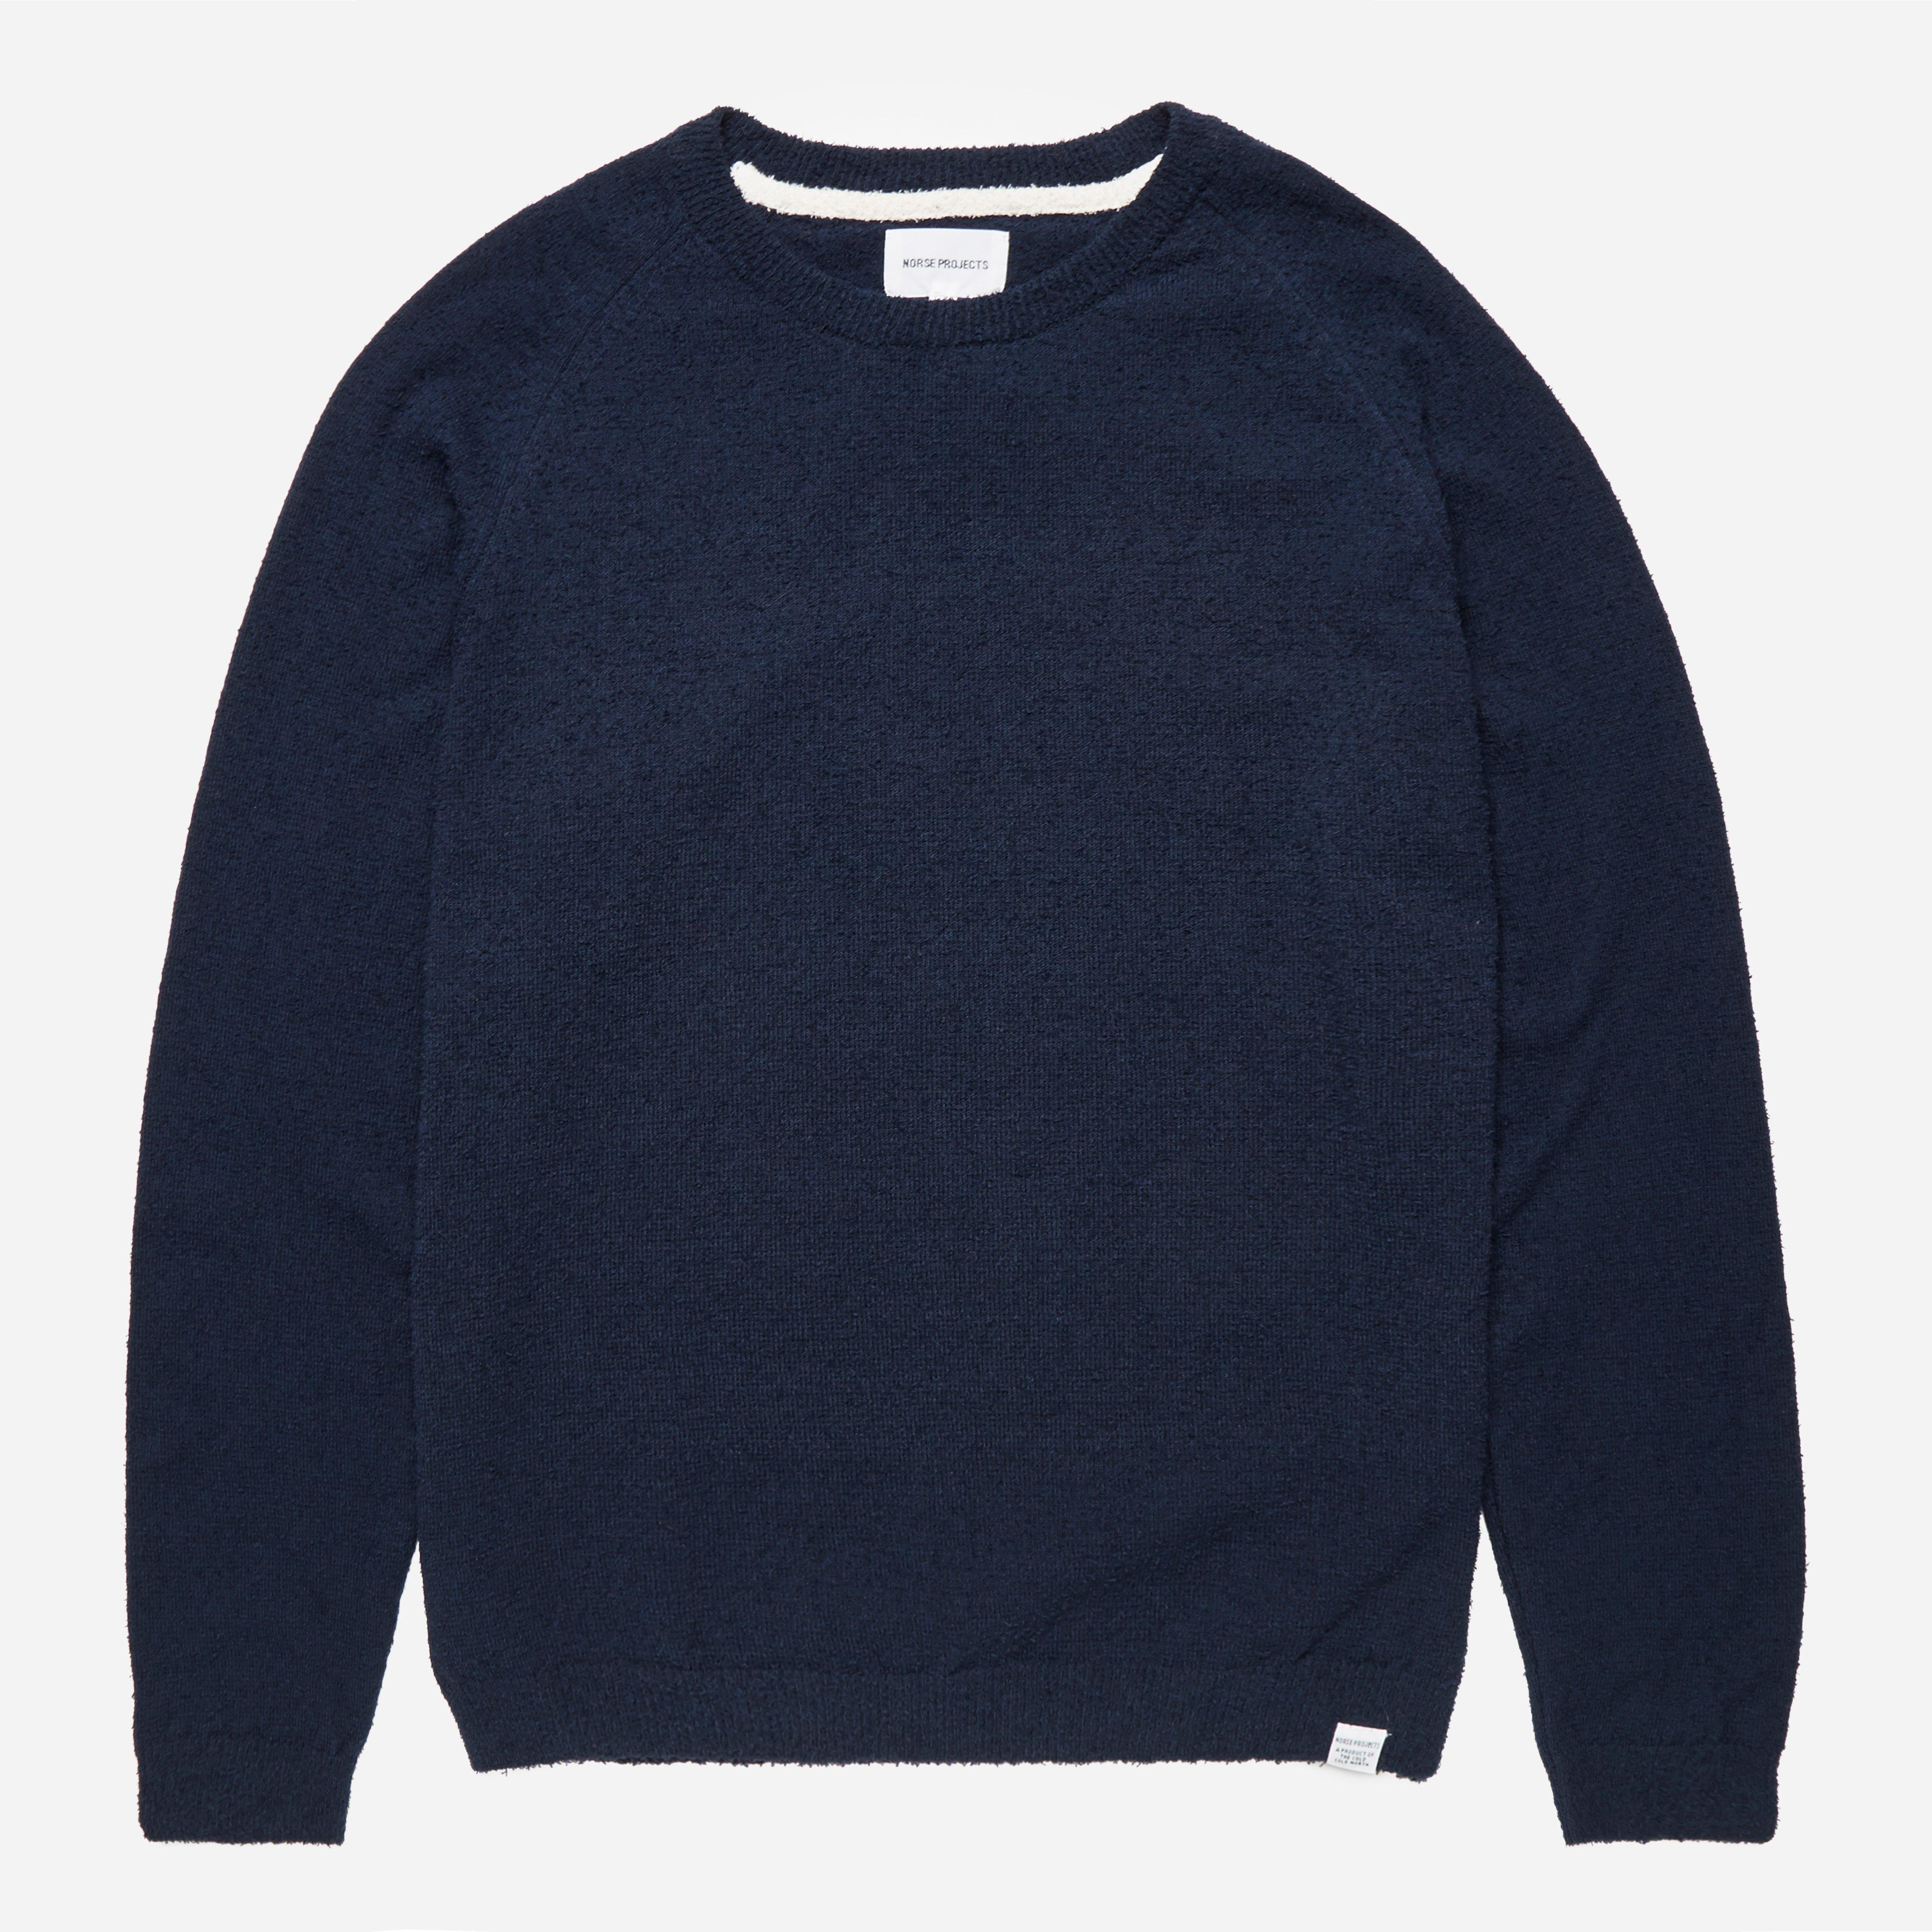 Norse Projects Birnir Cotton Texture Crew Knit